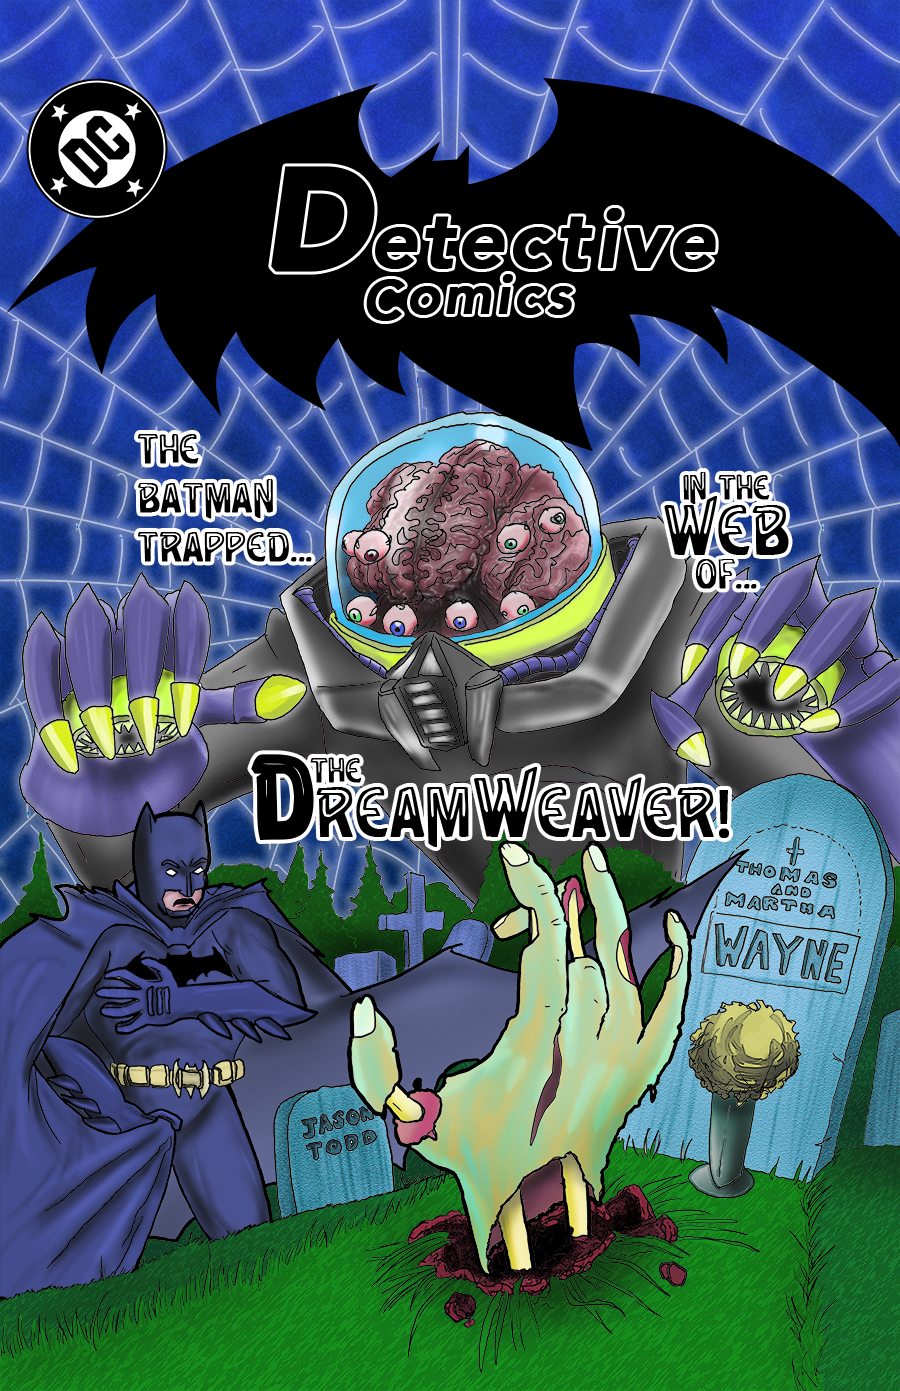 Batman v Dreamweaver, Final